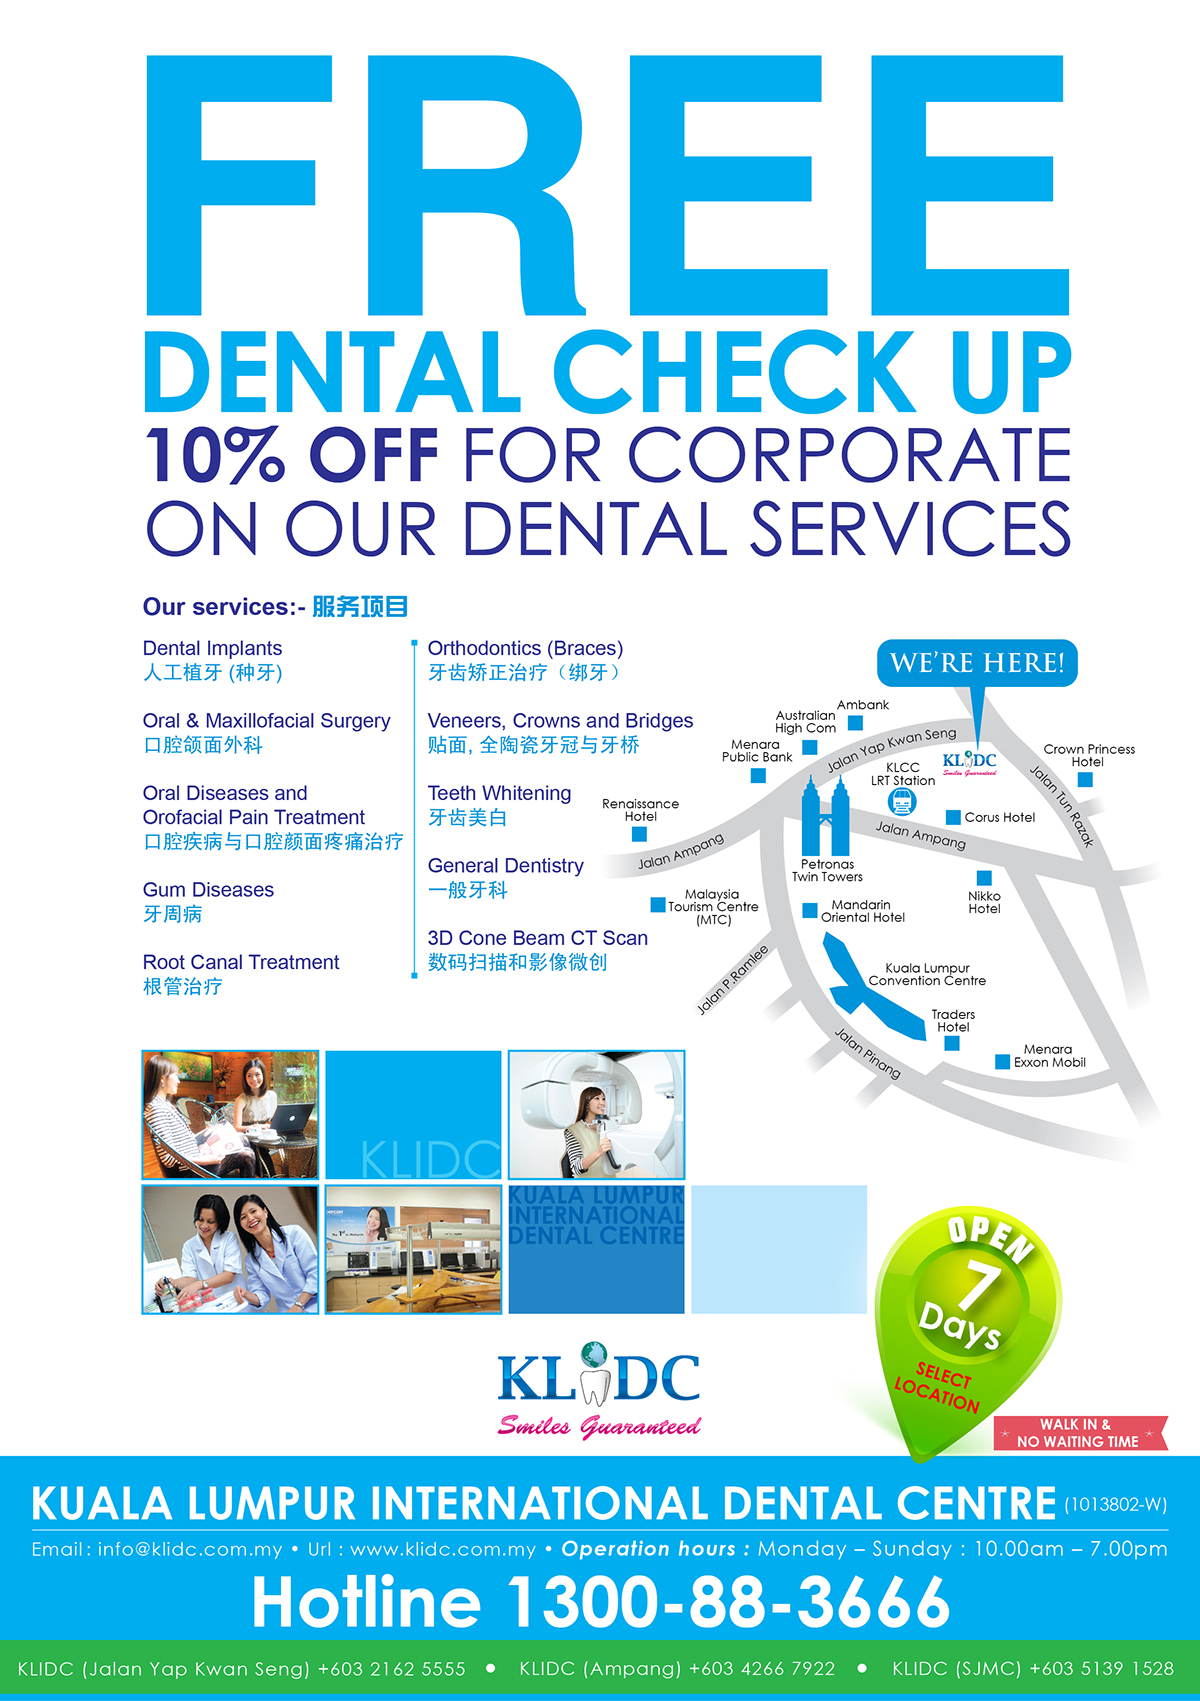 KLIDC Corporate Rate Offer Flyer Design on Pantone Canvas